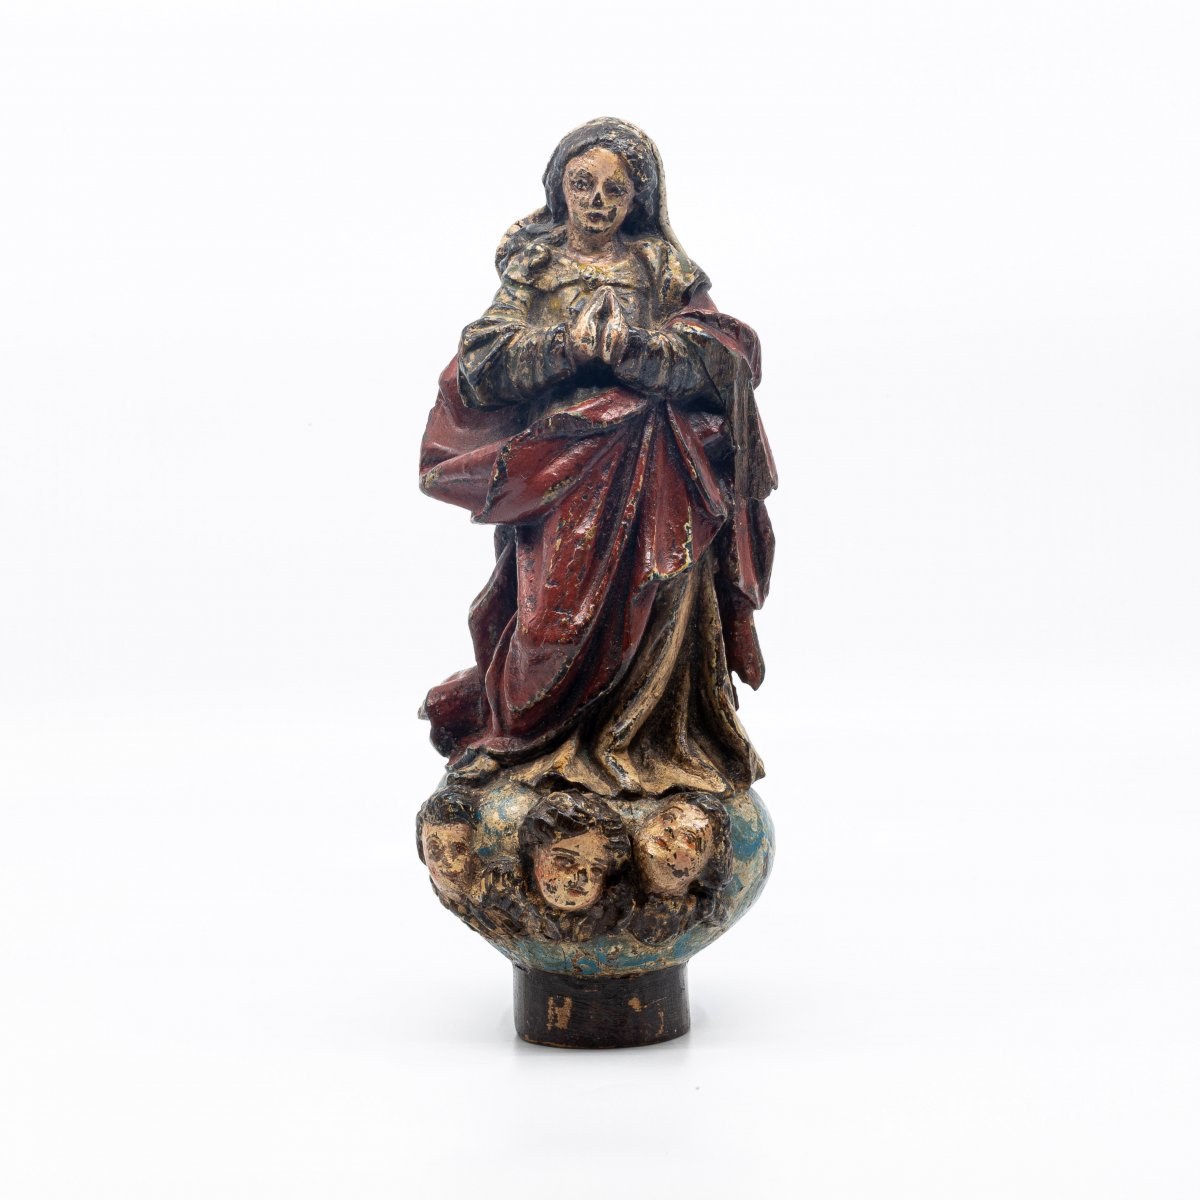 Carved Wood - Spain - 18th Century